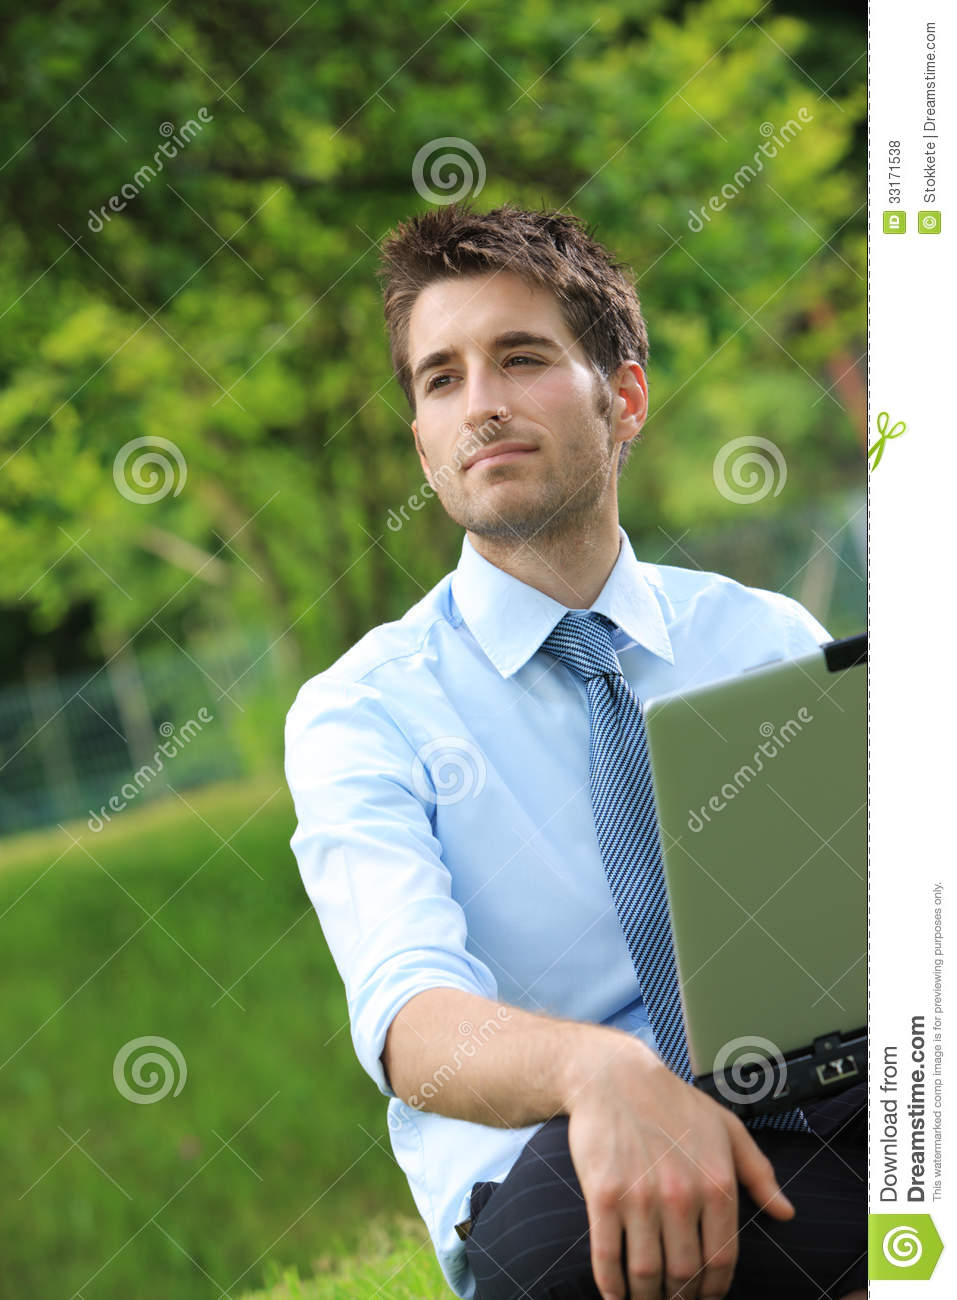 Working Outdoors Royalty Free Stock Photos - Image: 33171538